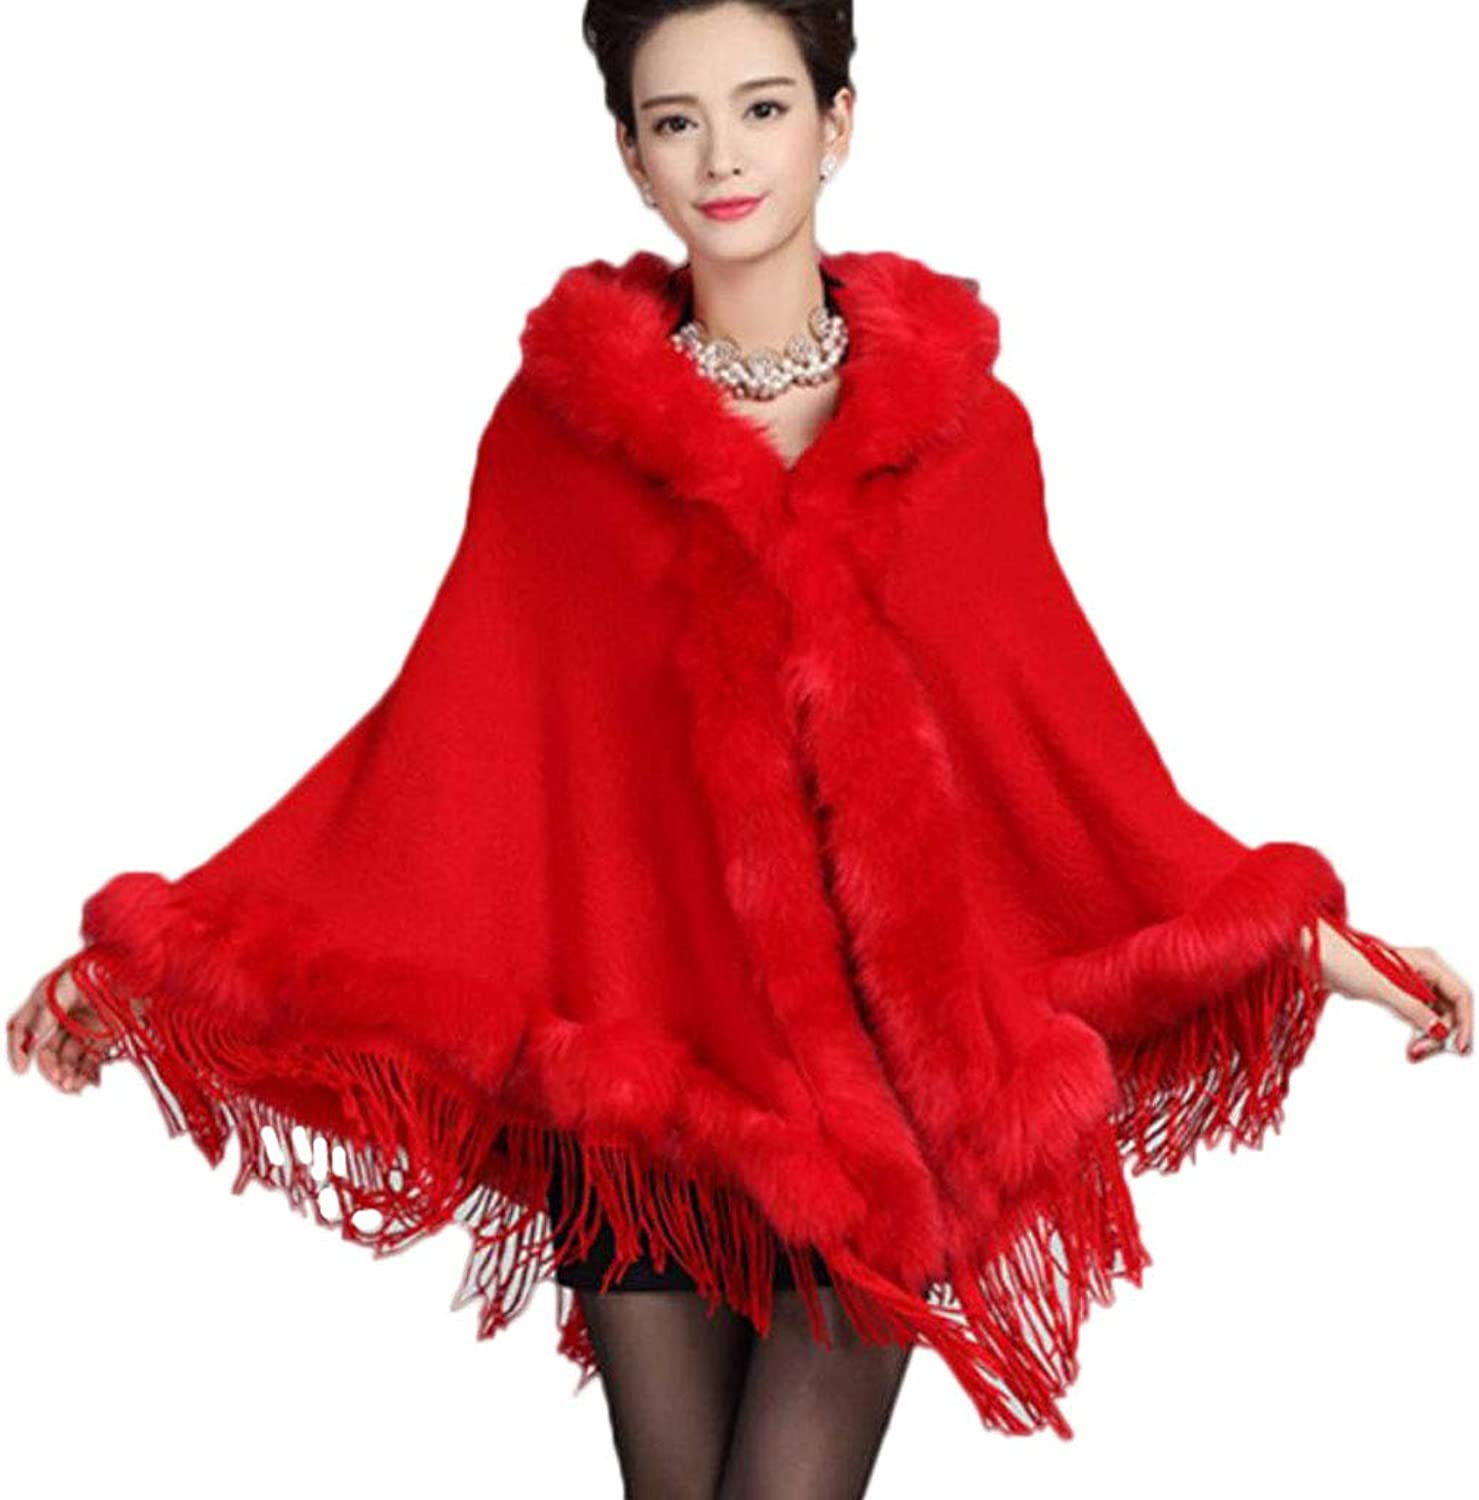 Hooded Tassel Autumn and Winter Fashion Women's Clothing Shawl Coat Knit Cloak Cardigan (color   RED, Size   OneSize)